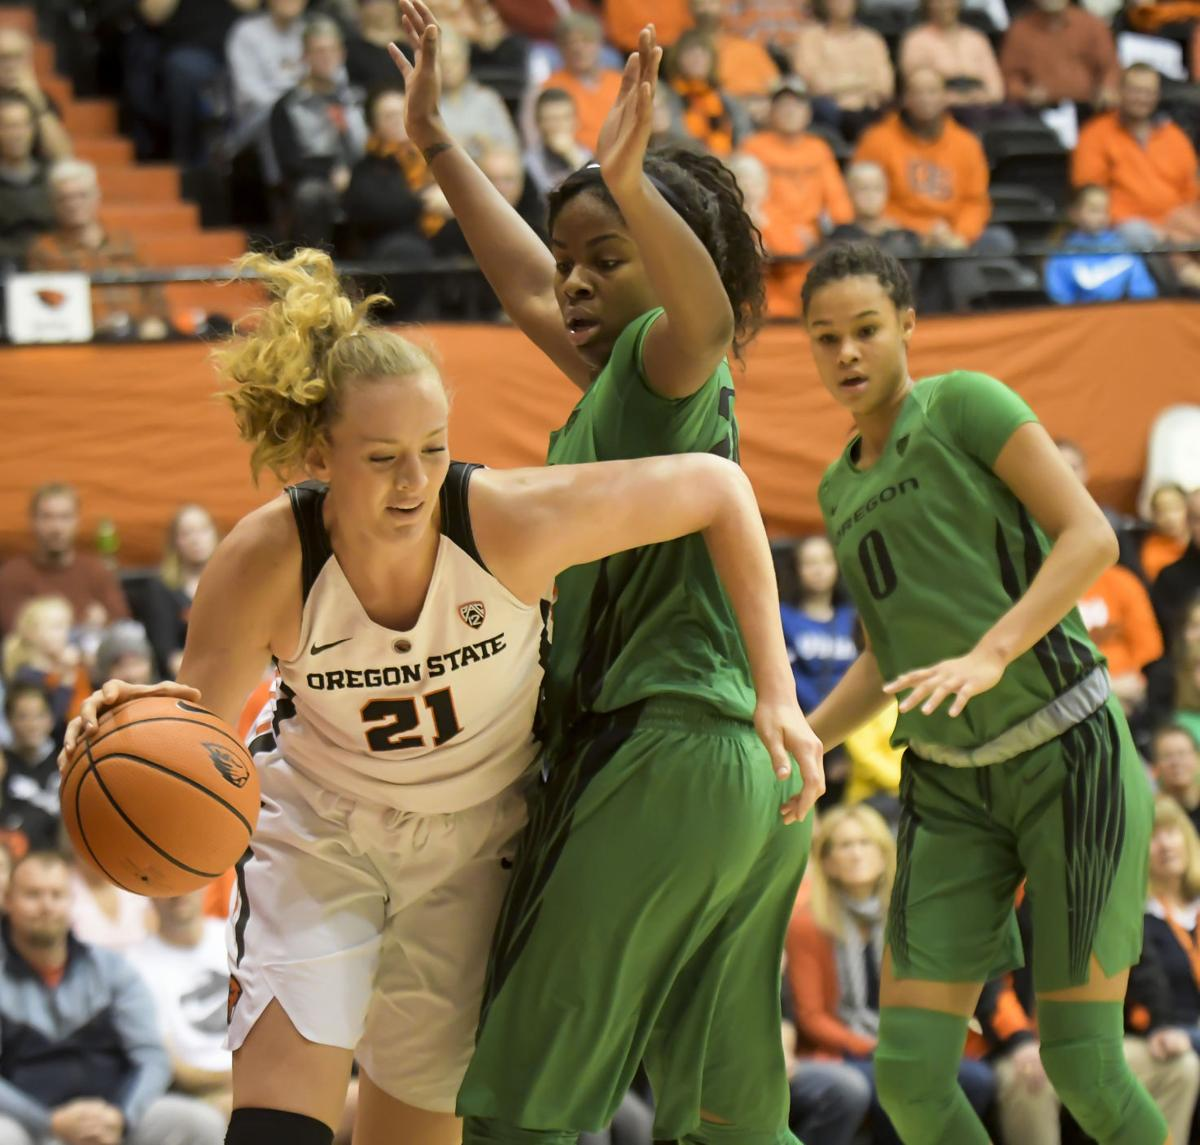 GALLERY: OSU vs UO WBX 03